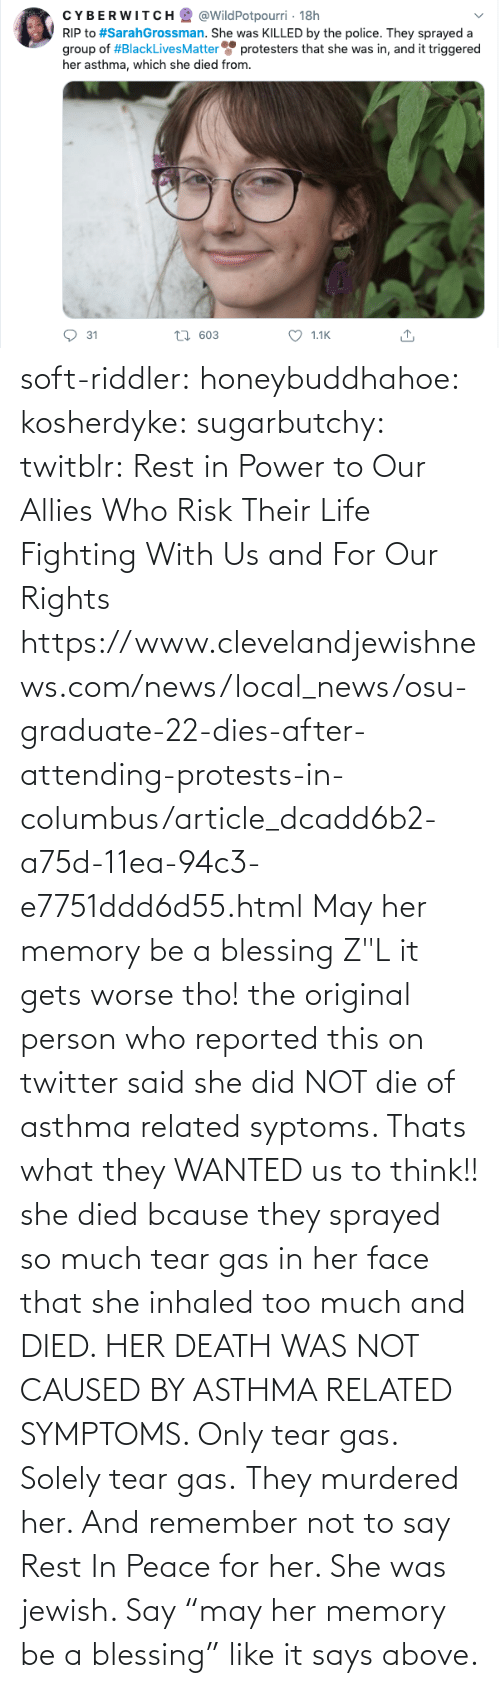 "so much: soft-riddler:  honeybuddhahoe:  kosherdyke:  sugarbutchy:  twitblr: Rest in Power to Our Allies Who Risk Their Life Fighting With Us and For Our Rights https://www.clevelandjewishnews.com/news/local_news/osu-graduate-22-dies-after-attending-protests-in-columbus/article_dcadd6b2-a75d-11ea-94c3-e7751ddd6d55.html    May her memory be a blessing Z""L  it gets worse tho! the original person who reported this on twitter said she did NOT die of asthma related syptoms. Thats what they WANTED us to think!! she died bcause they sprayed so much tear gas in her face that she inhaled too much and DIED. HER DEATH WAS NOT CAUSED BY ASTHMA RELATED SYMPTOMS. Only tear gas. Solely tear gas. They murdered her.     And remember not to say Rest In Peace for her. She was jewish. Say ""may her memory be a blessing"" like it says above."